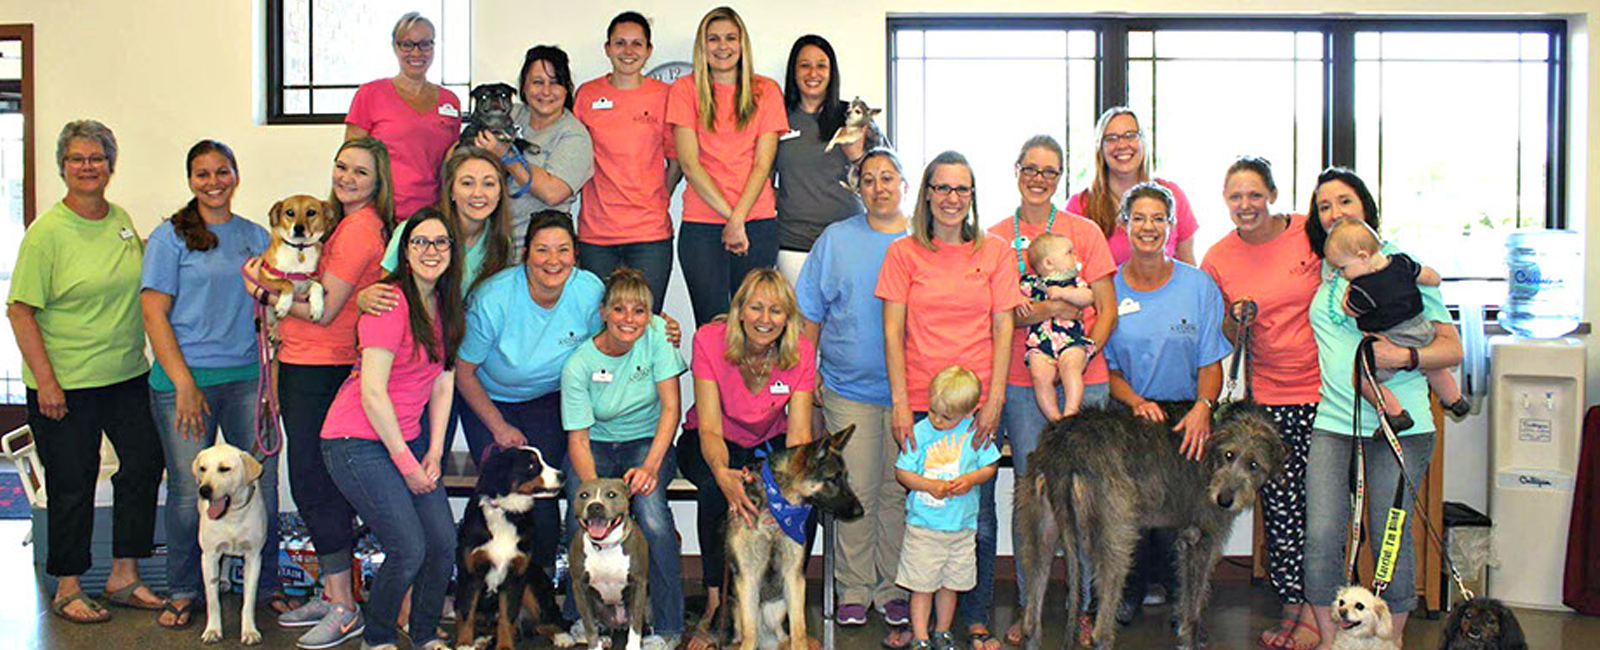 Team Picture of VCA Allendale Animal Hospital